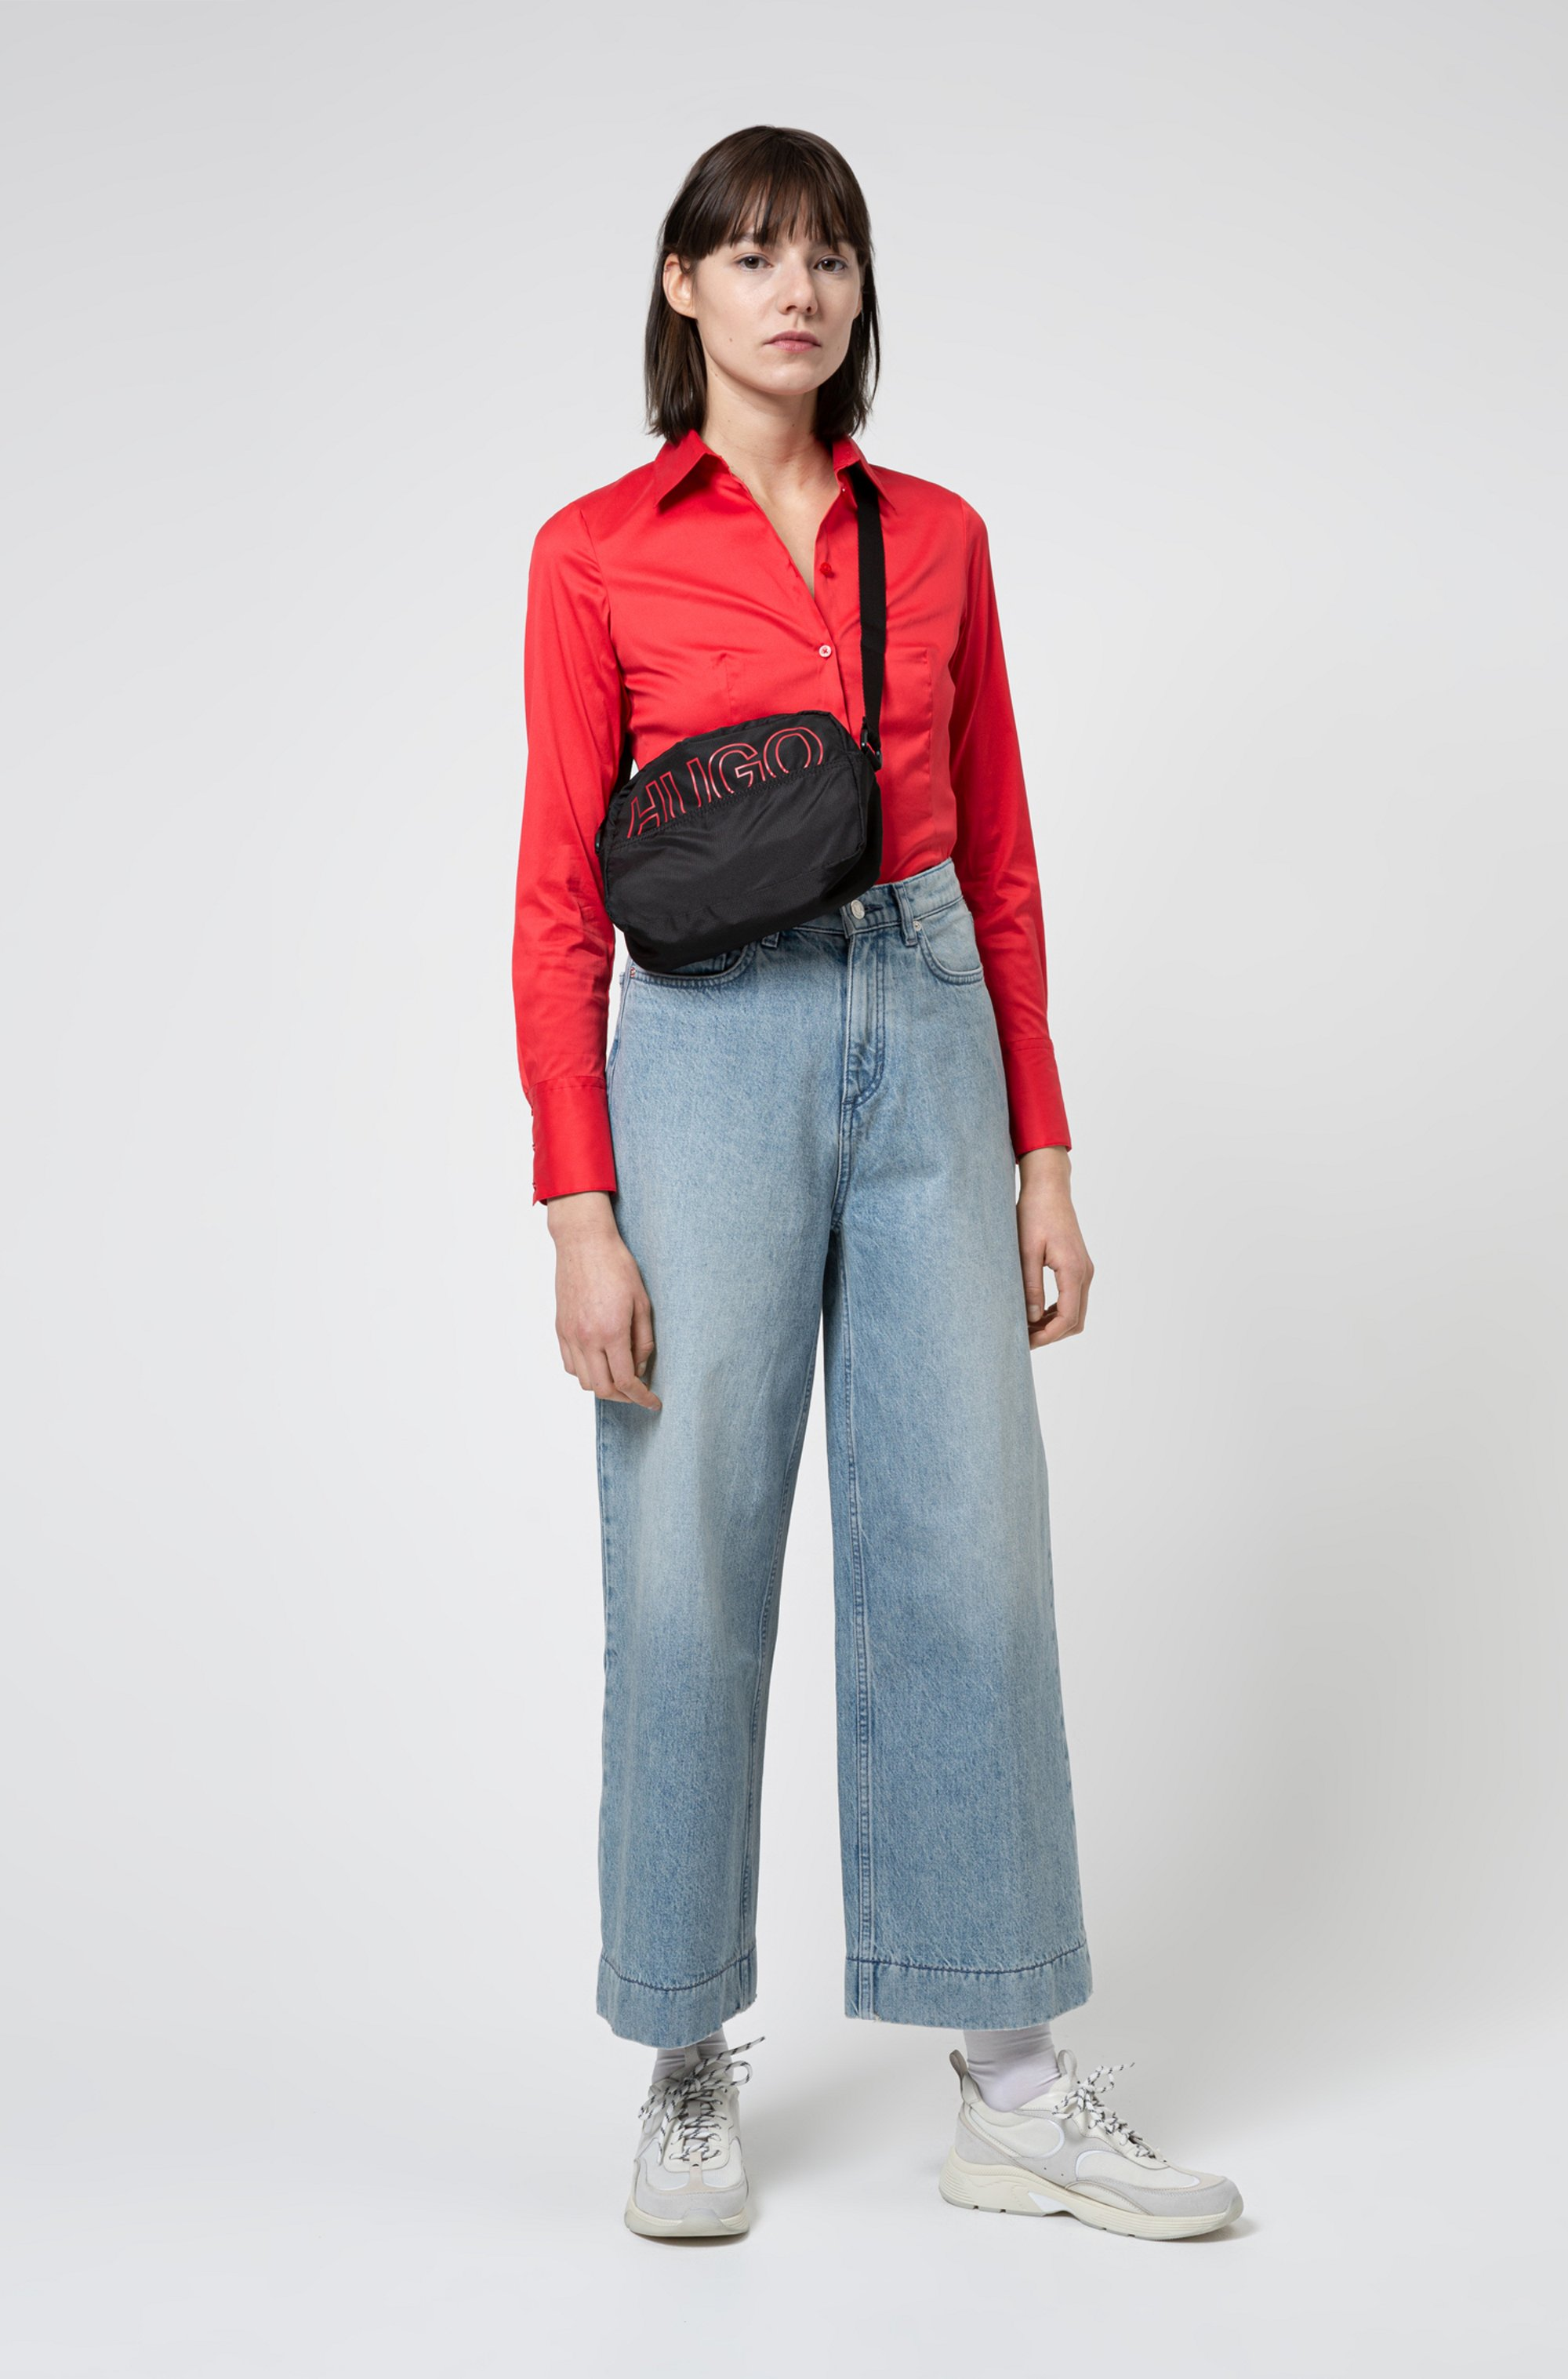 Packable cross-body bag in recycled nylon